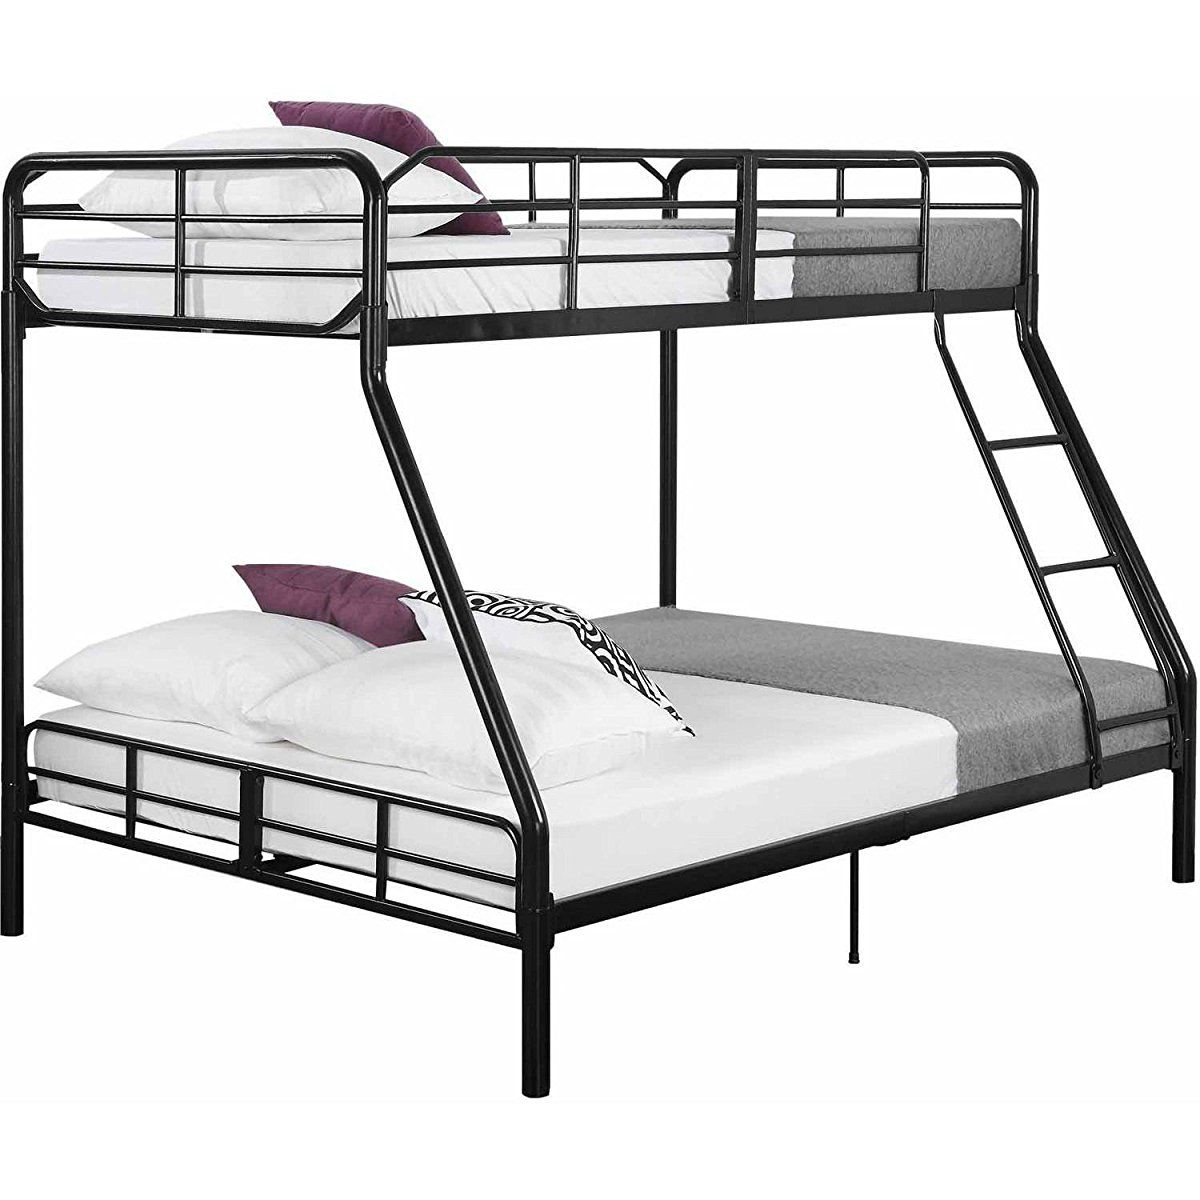 Twin Over Full Bunk Bed Kids Teens Bedroom Dorm Furniture Metal